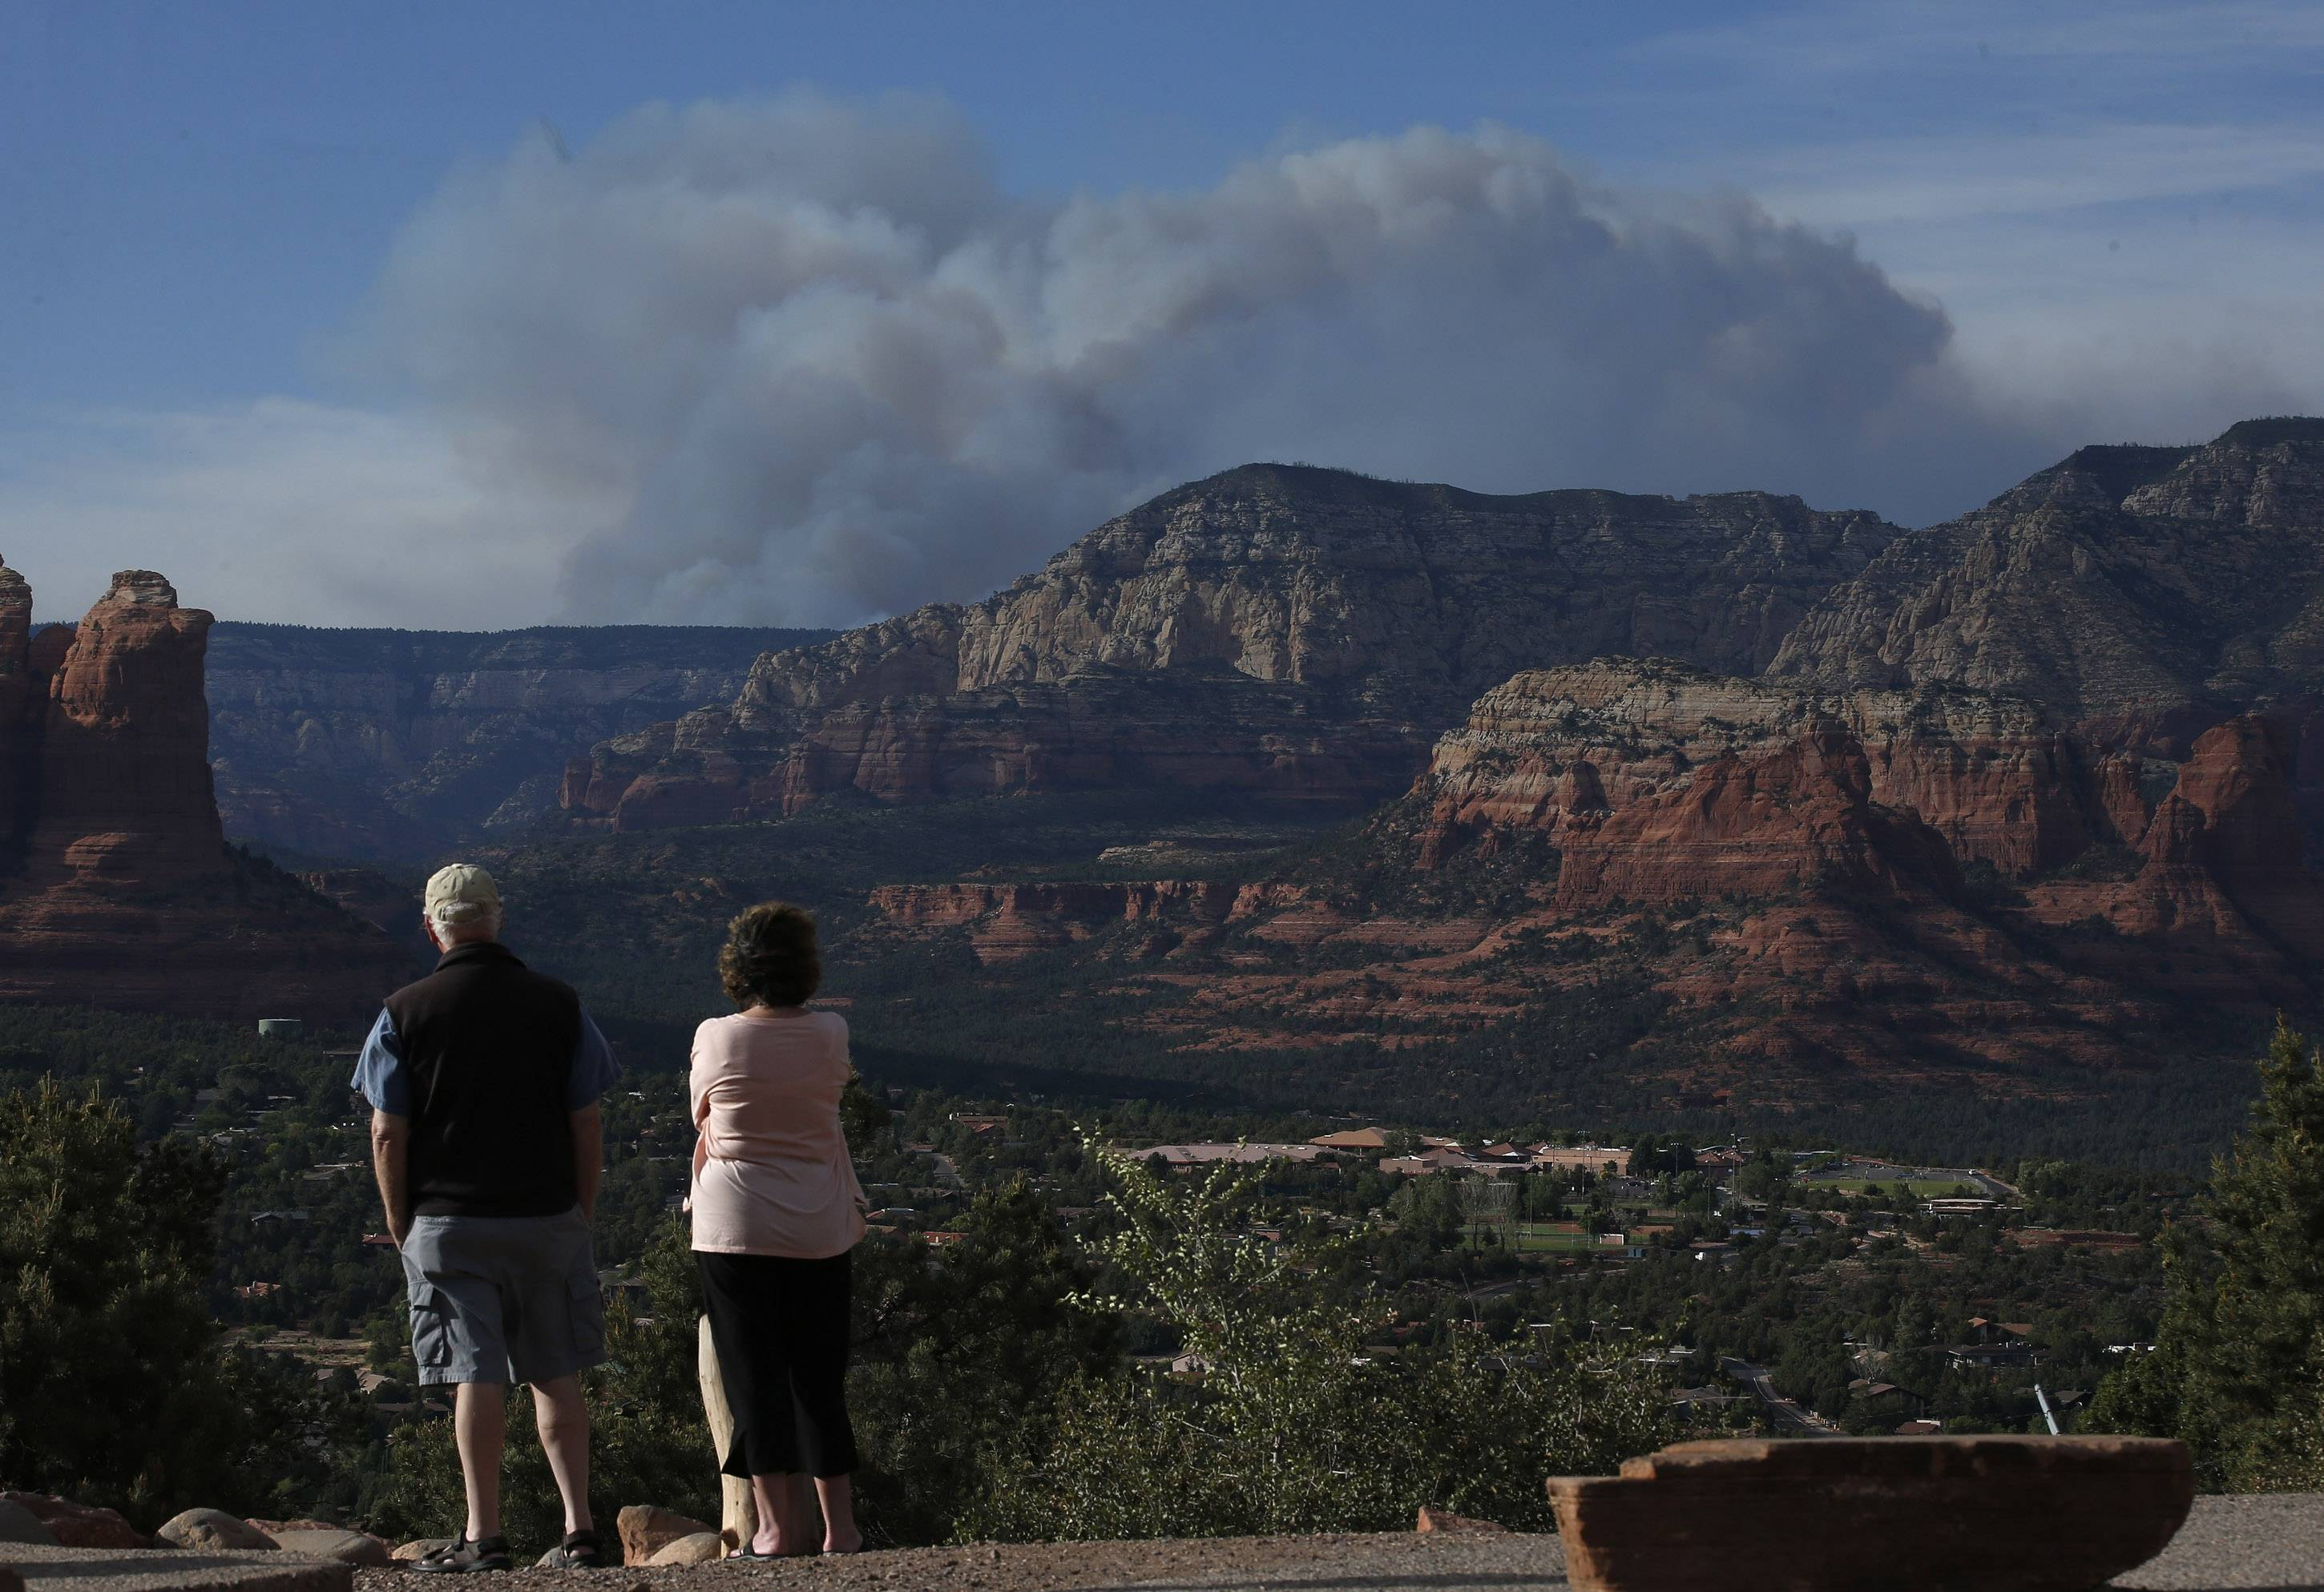 Tourists watch the Slide Fire from a scenic overlook as it burns up Oak Creek Canyon nearby on Thursday, May 22, 2014, in Sedona, Ariz. The fire has burned approximately 4,800 acres and is zero percent contained.